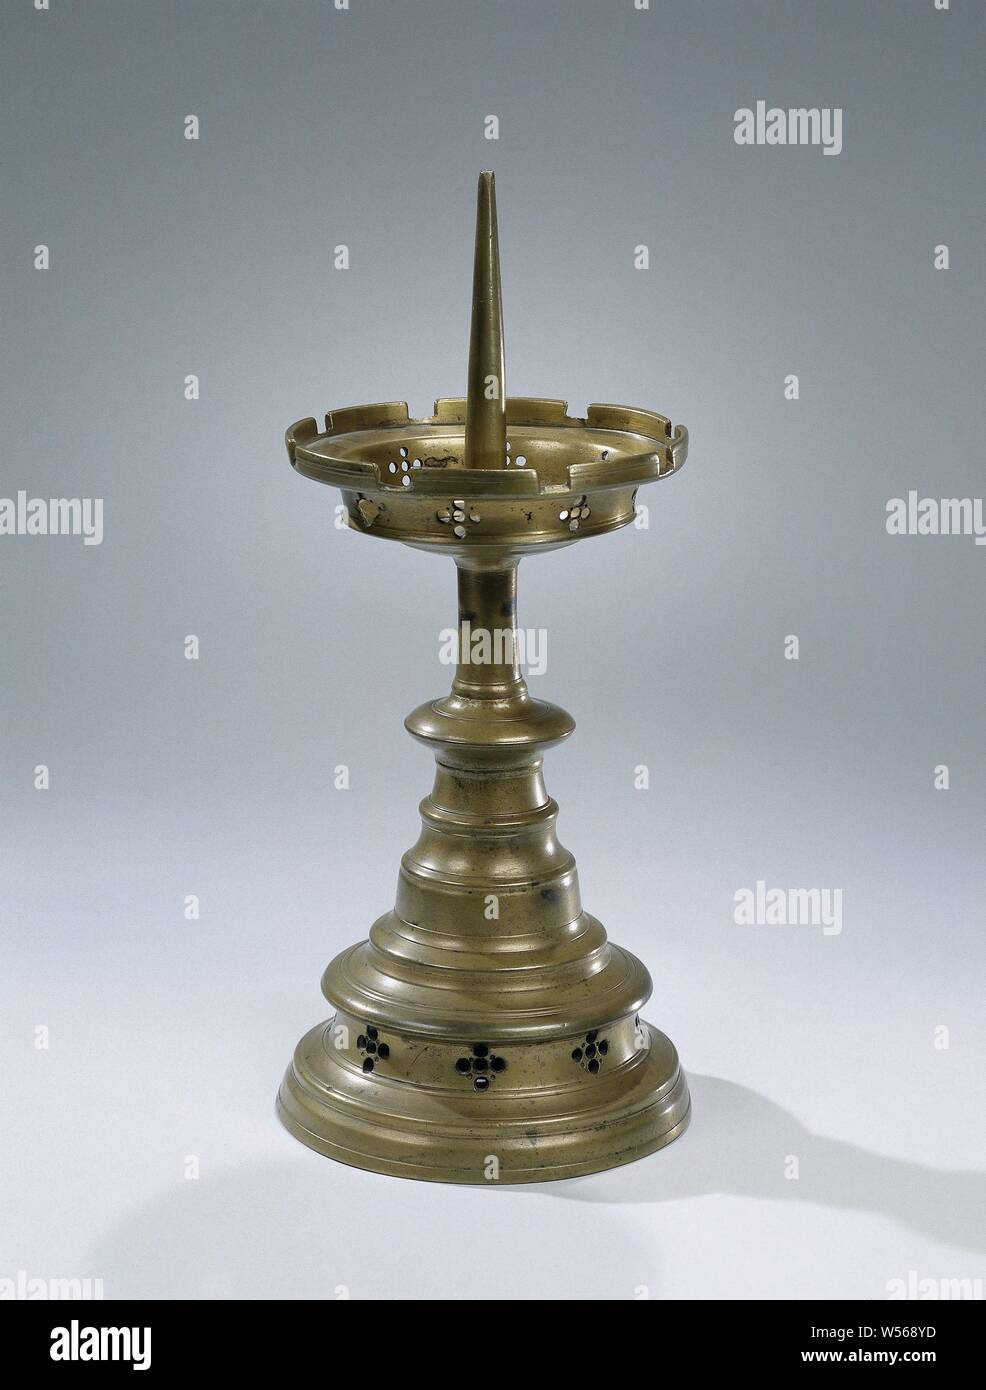 Candlestick with profiled foot and stem with a candle pin